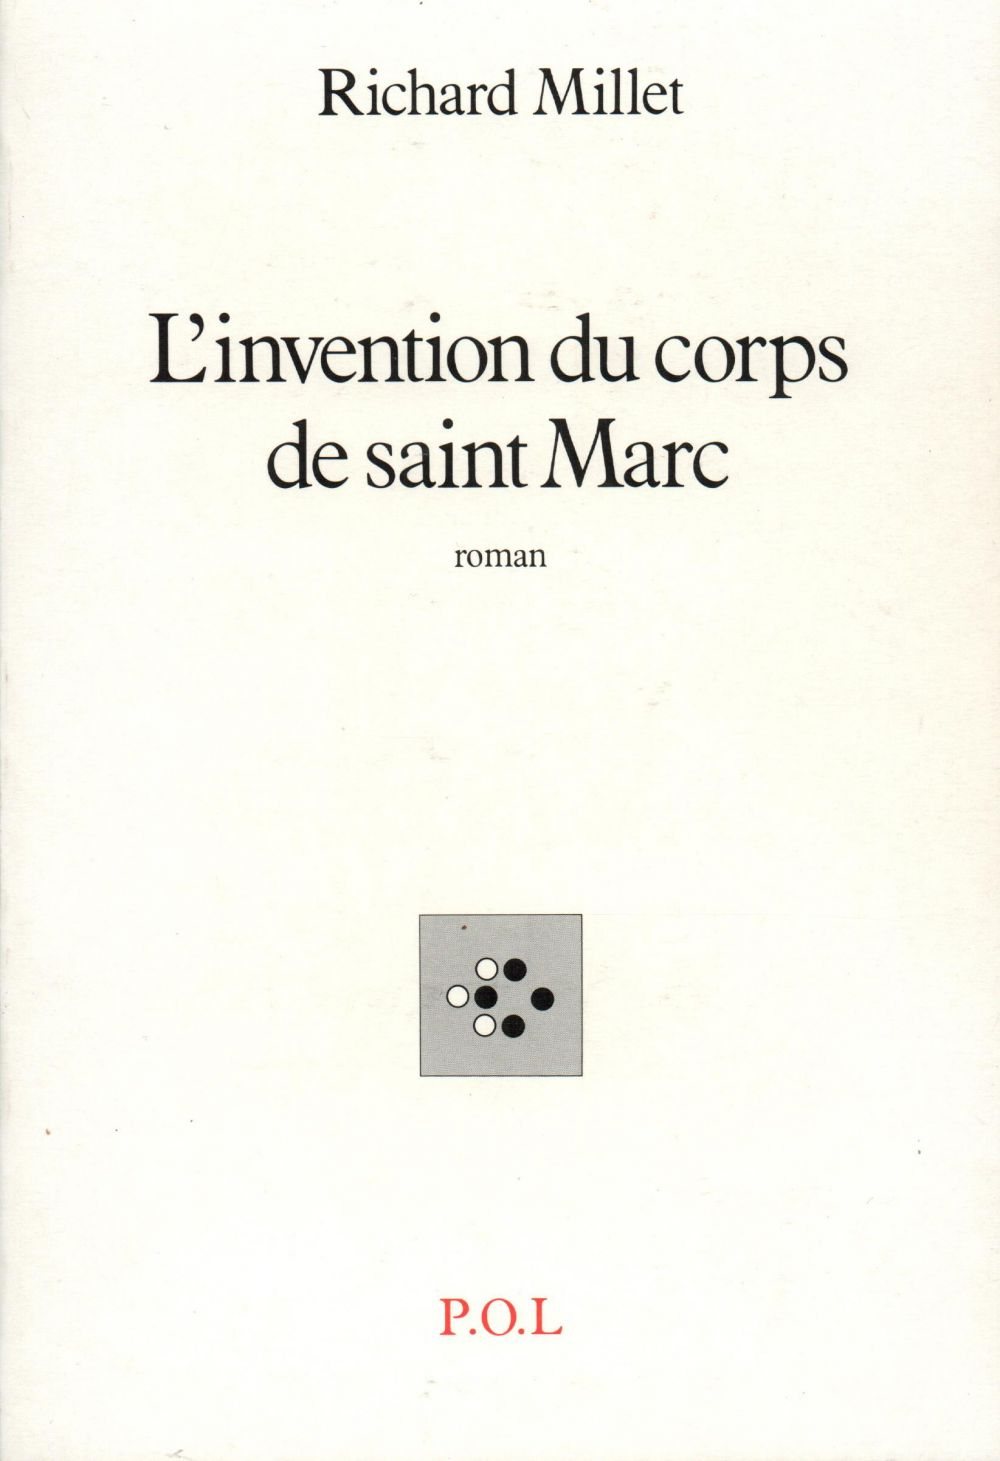 L'Invention du corps de saint Marc